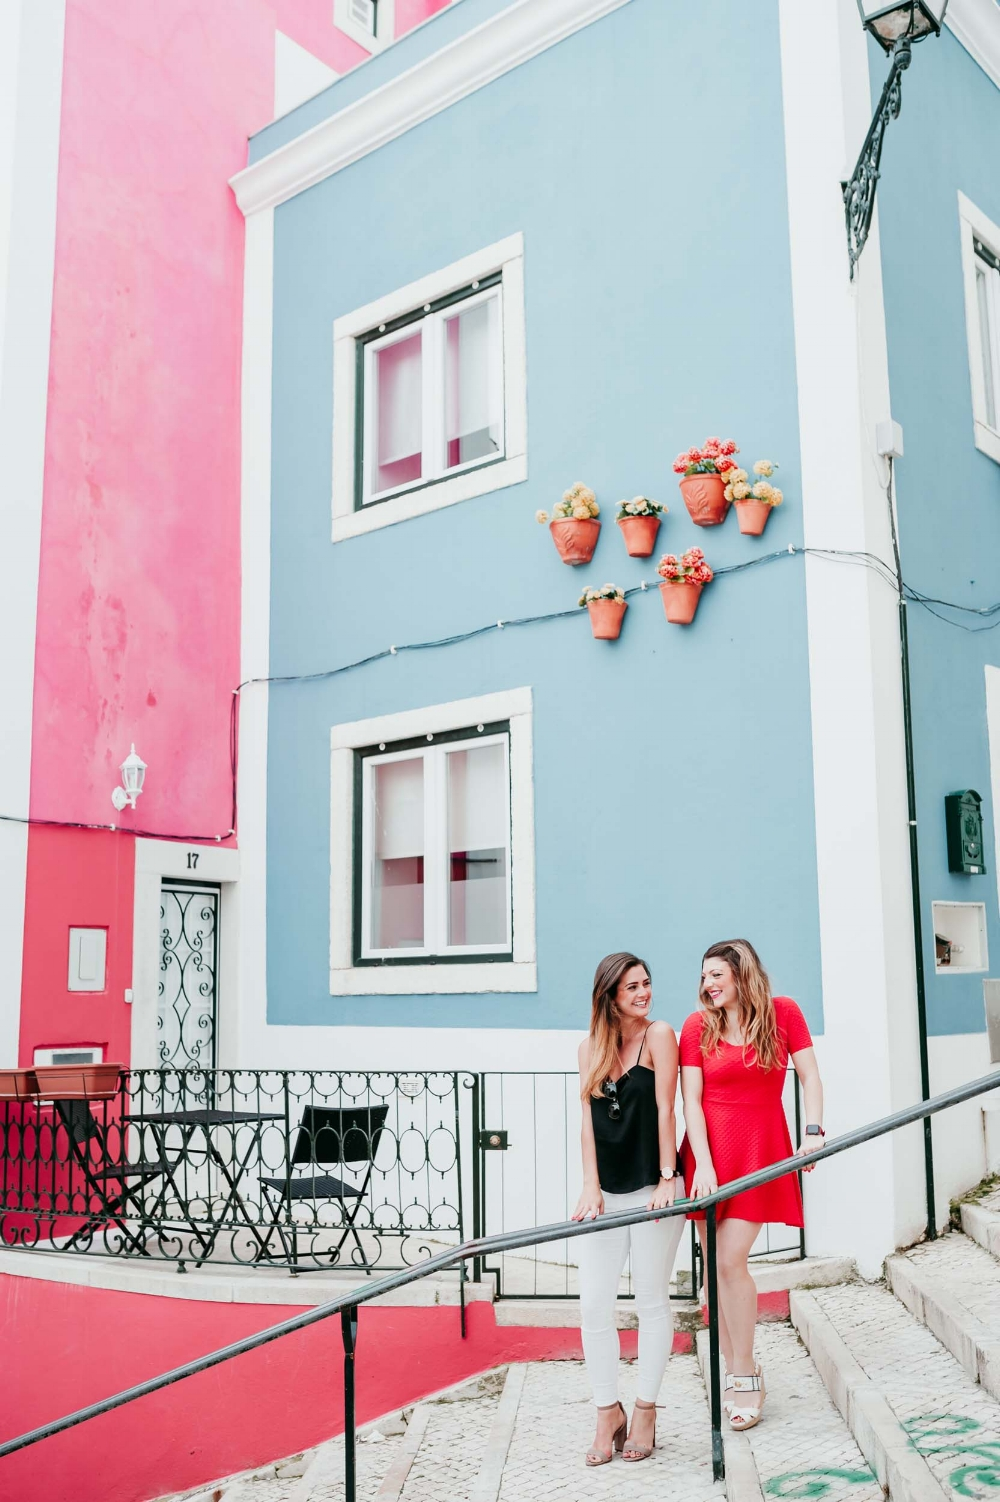 Check out the 10 best places to take Instagram photos in Lisbon on the Flytographer blog! | Travel + Vacation Photographer | Family Vacations | Engagement Proposals | Honeymoons | Anniversary Gifts | Bachelorette Ideas | Solo Traveller Tips |  Flytographer captures your travel memories - everything from surprise proposals, honeymoons, family vacations, and more. So often you are missing out of your own photos! Flytographer solves that problem for you. Our photographers also act as informal tour guides and provide fun local tips to our customers, showing them an area of a city they may not have explored without Flytographer. Book your photographer at 1.888.211.7178 or visit our website at www.flytographer.com/book